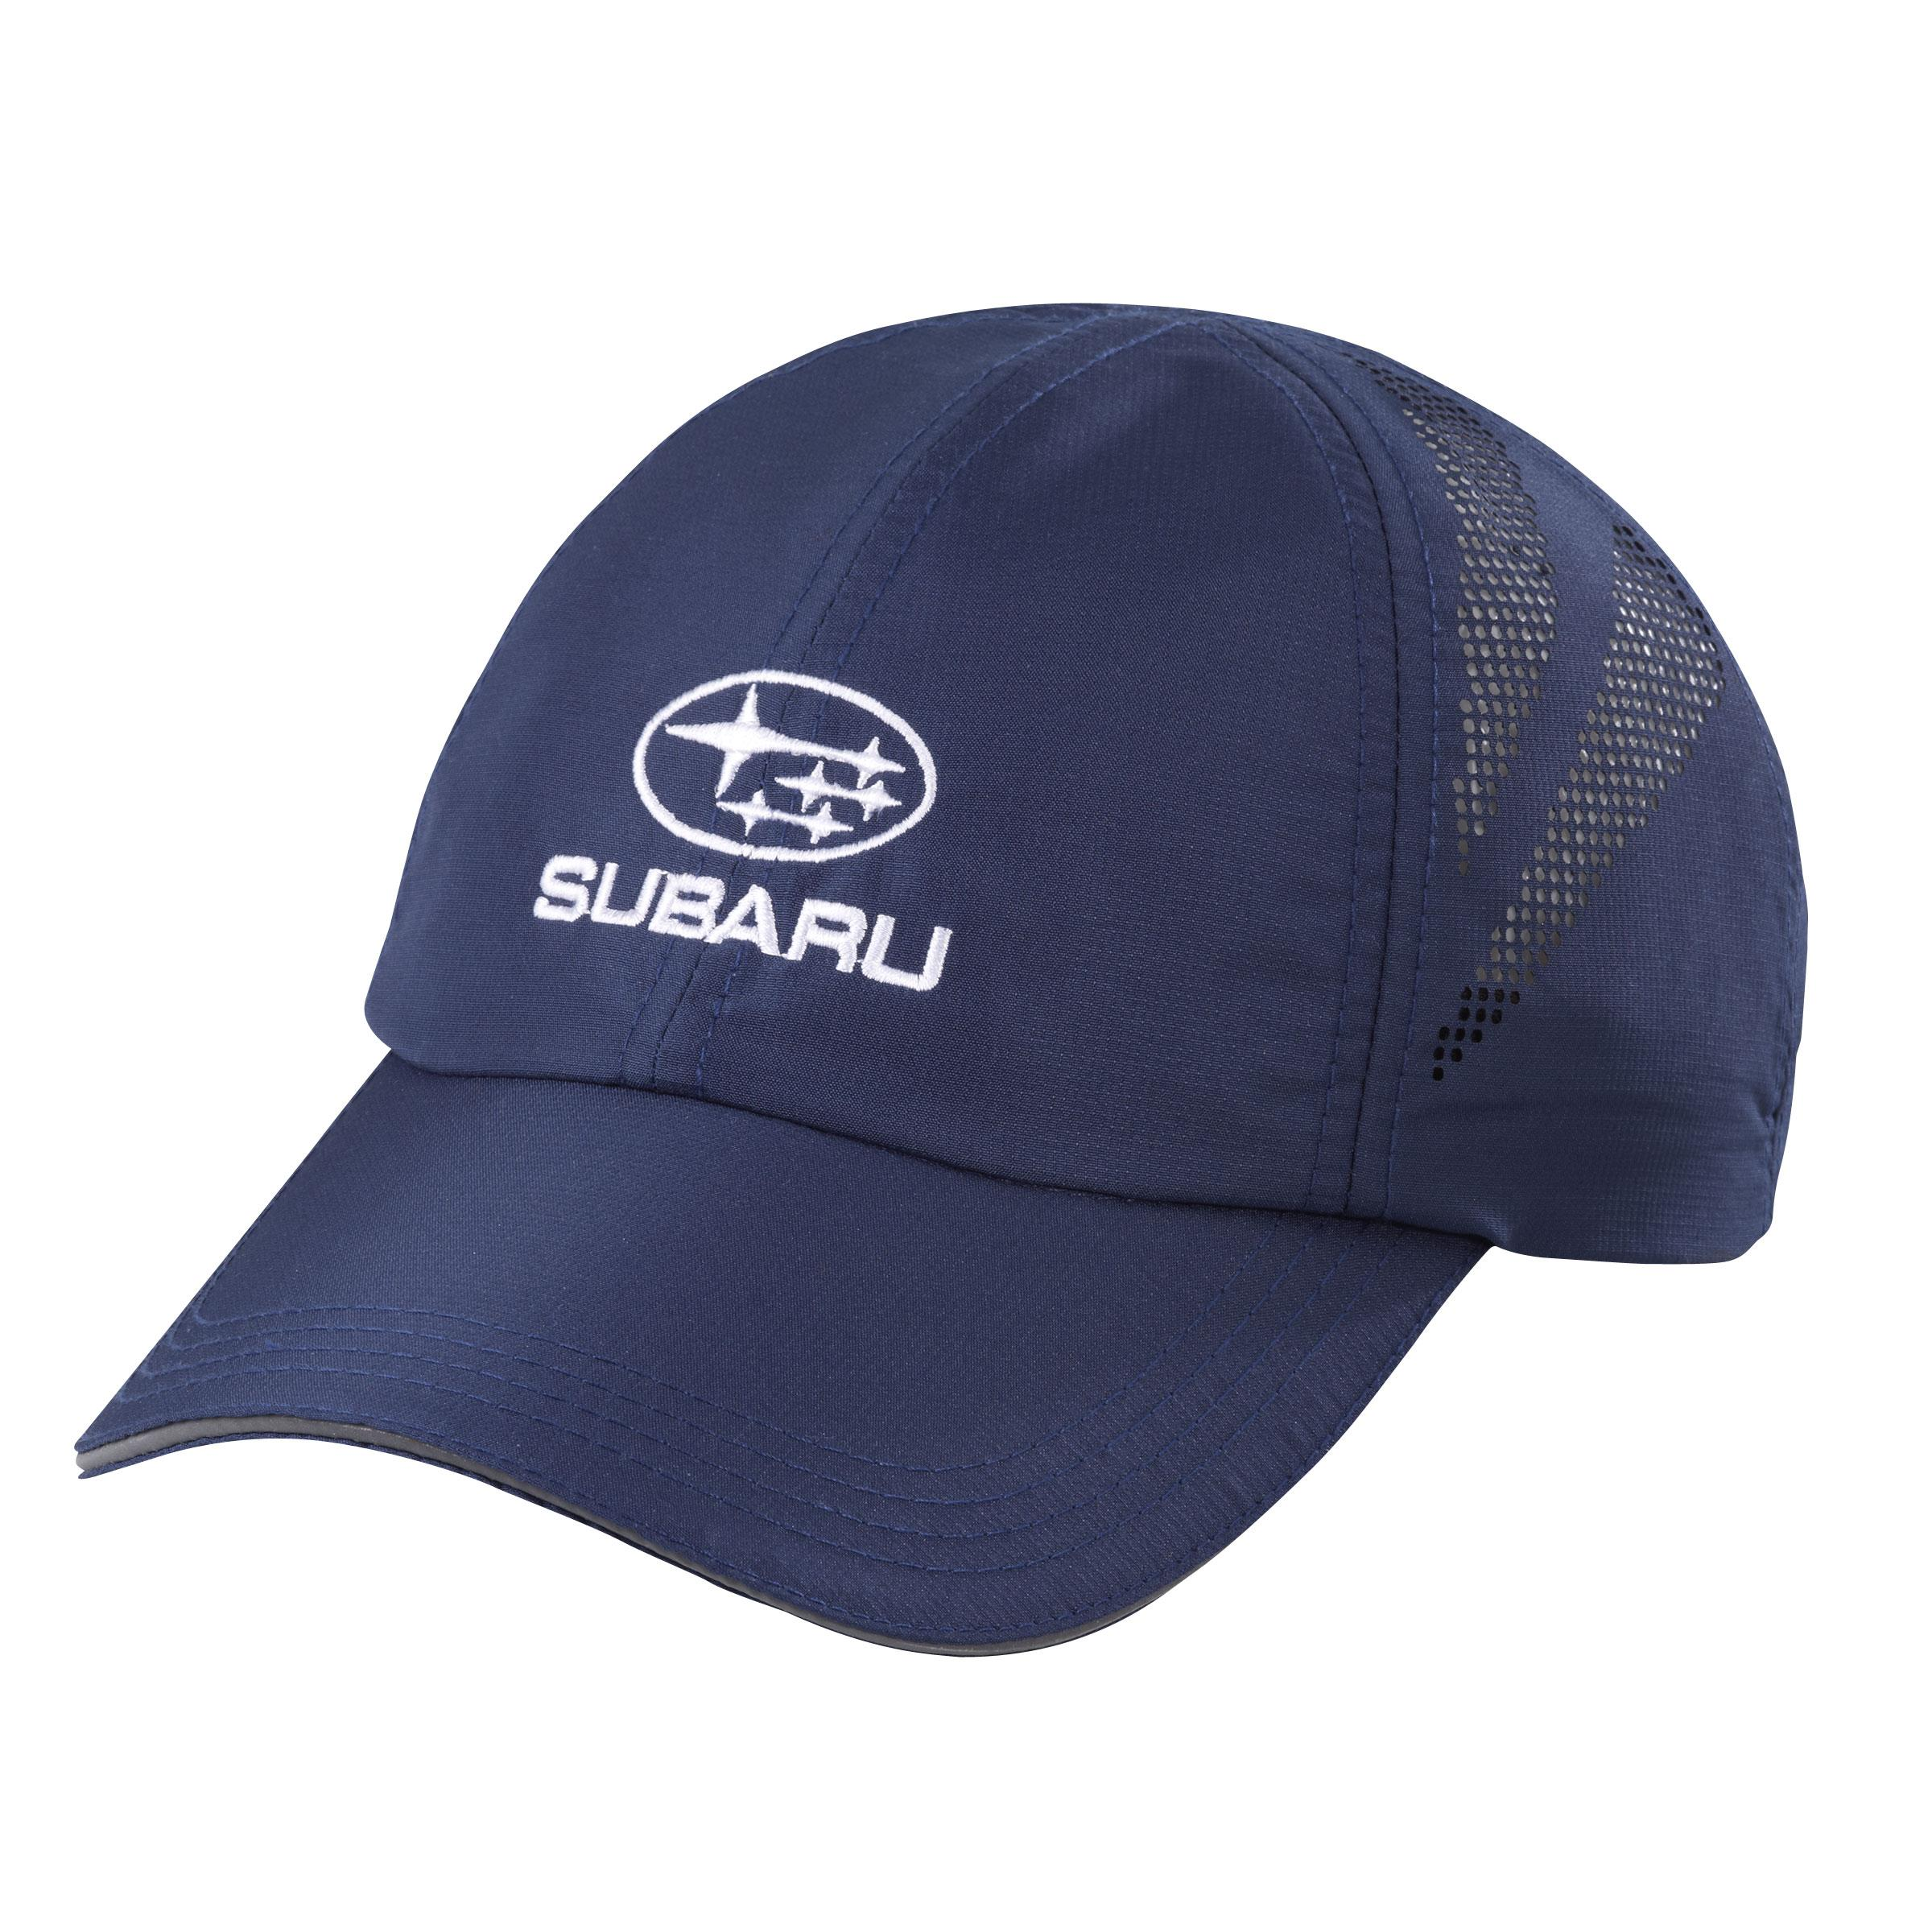 200207996 Subaru Performance Sandwich Cap Navy Blue